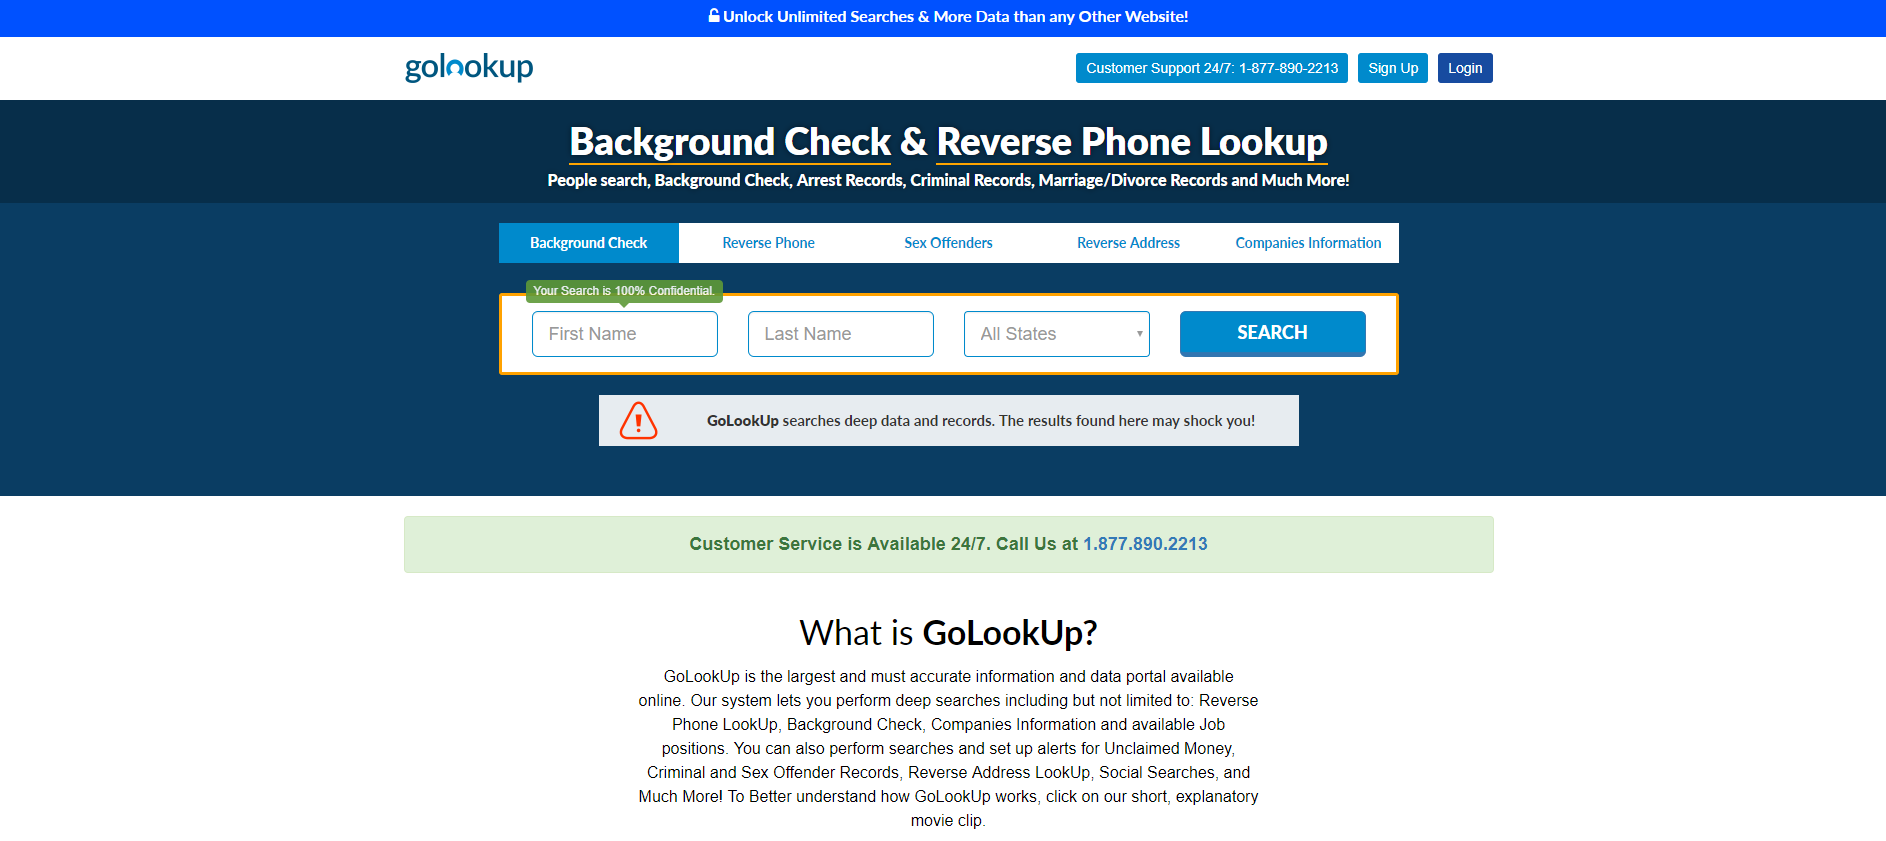 Why You Should Use Reverse Address on Golookup